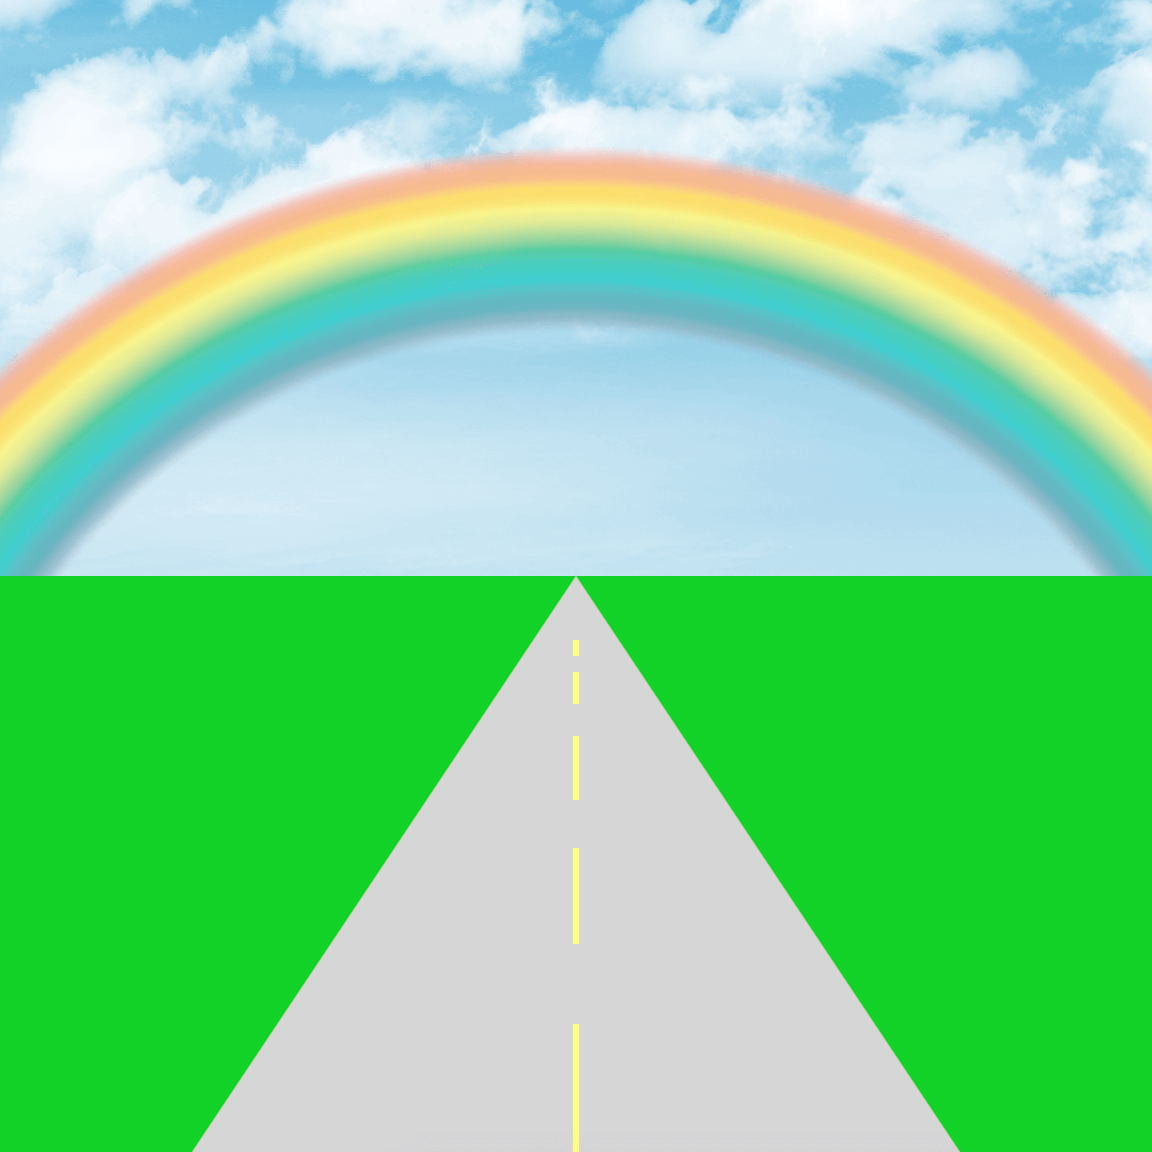 roadViewWithRainbow.png